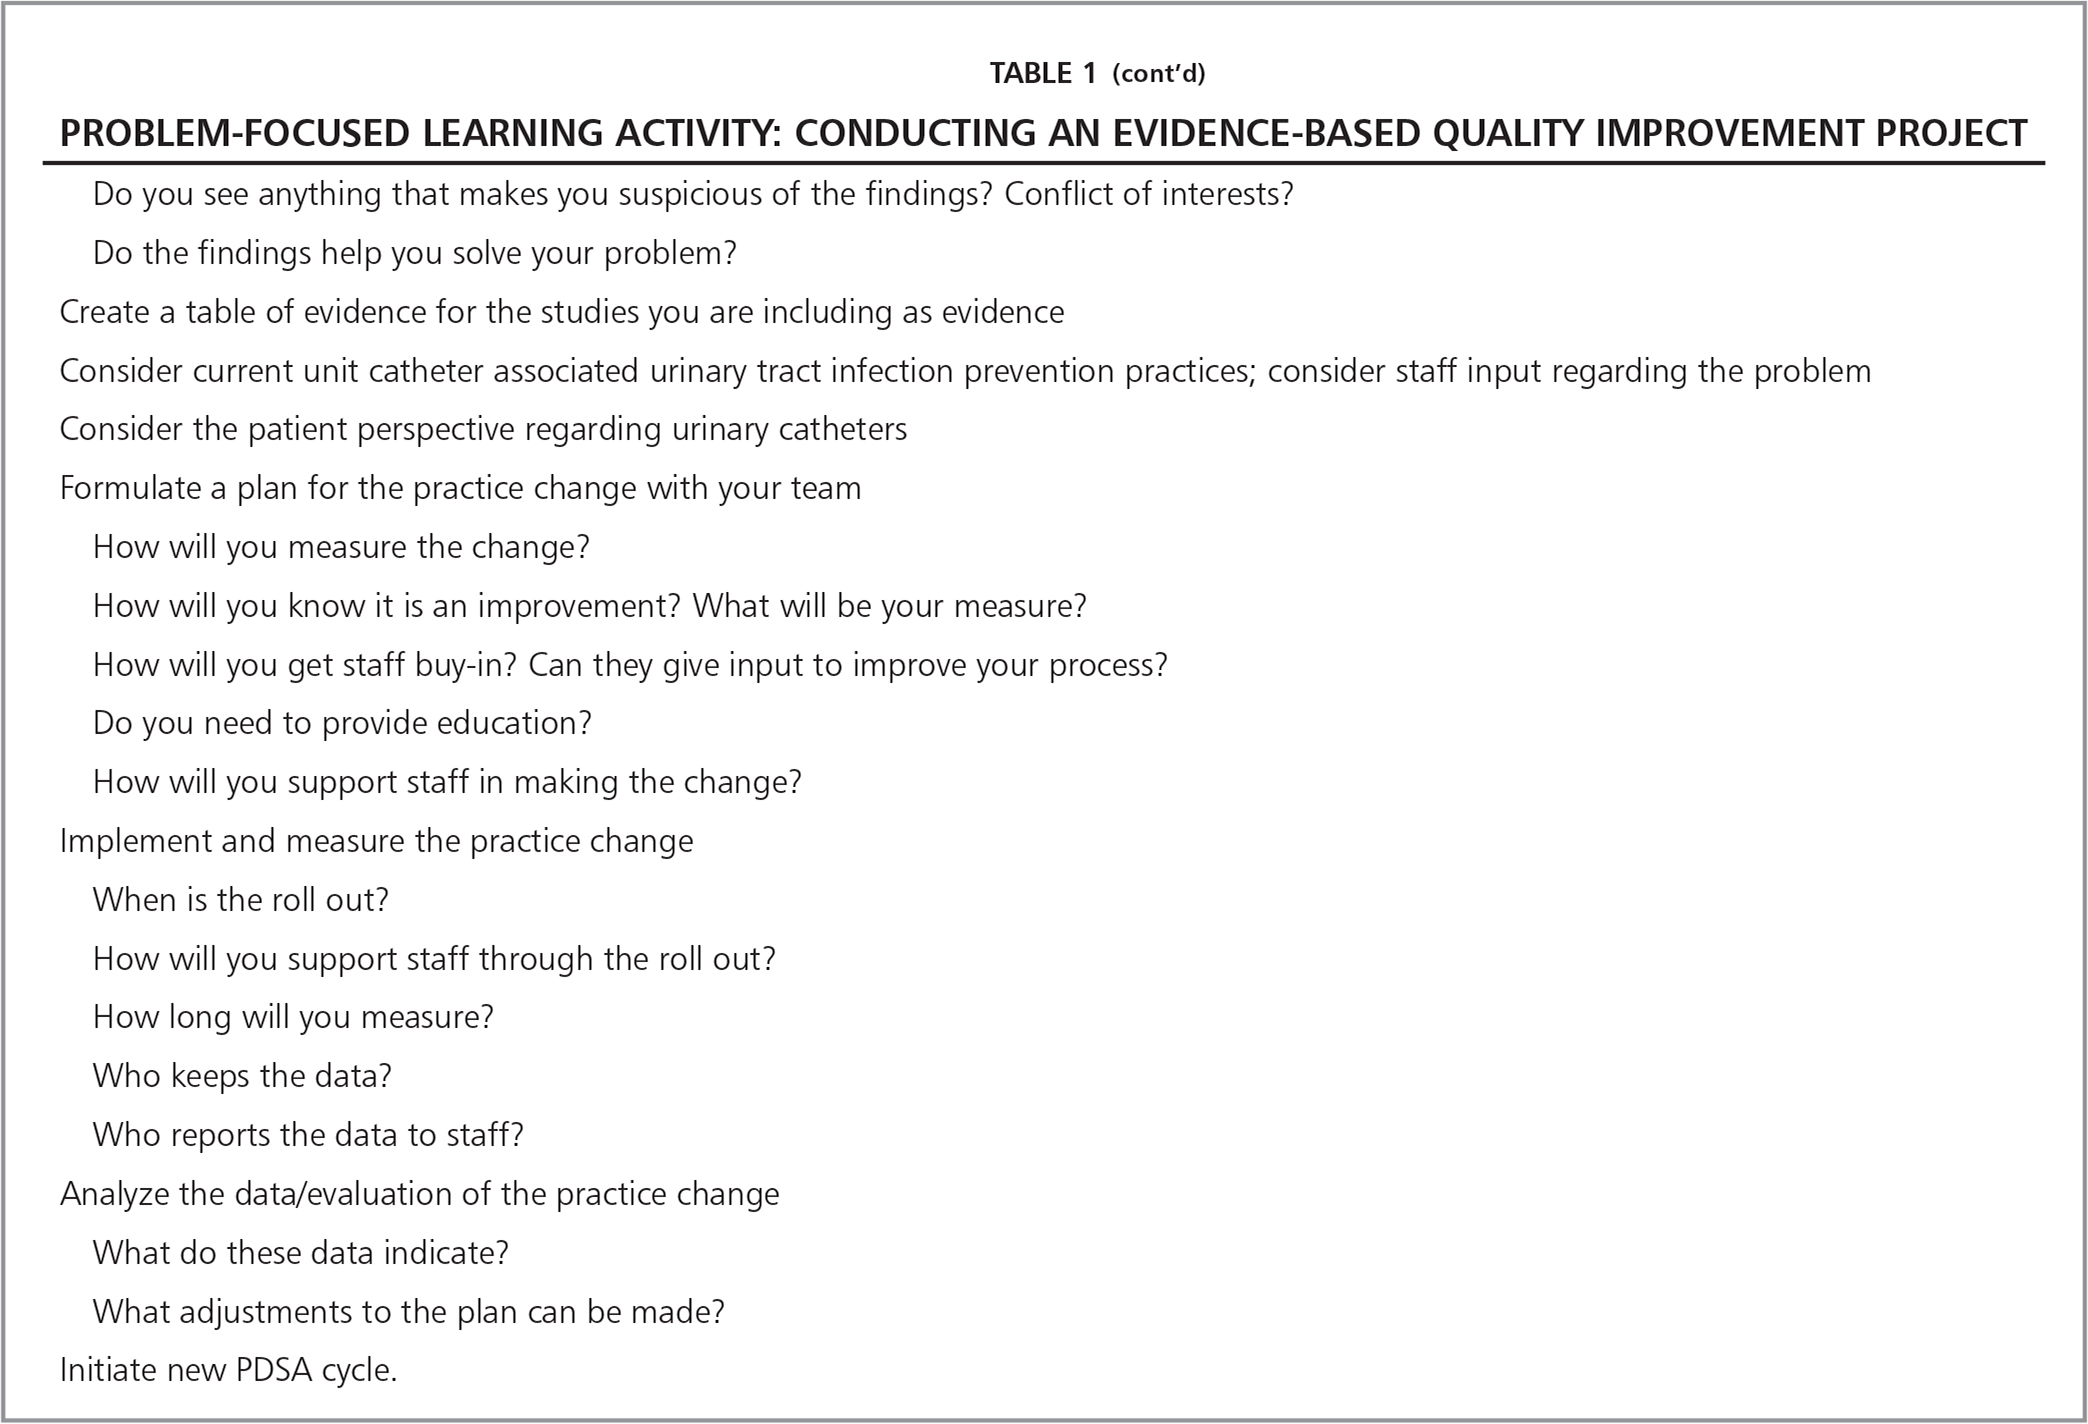 Problem-Focused Learning Activity: Conducting an Evidence-Based Quality Improvement Project